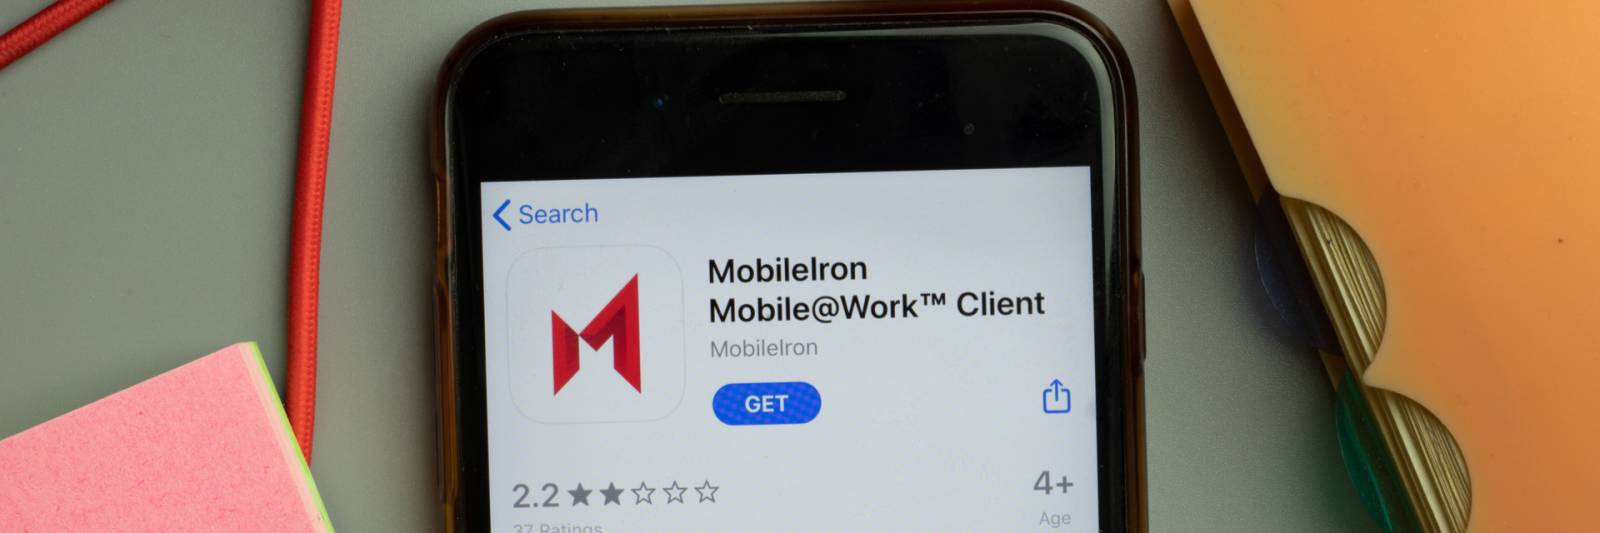 Ncsc Urges Firms To Patch Against Mobileiron Vulnerability